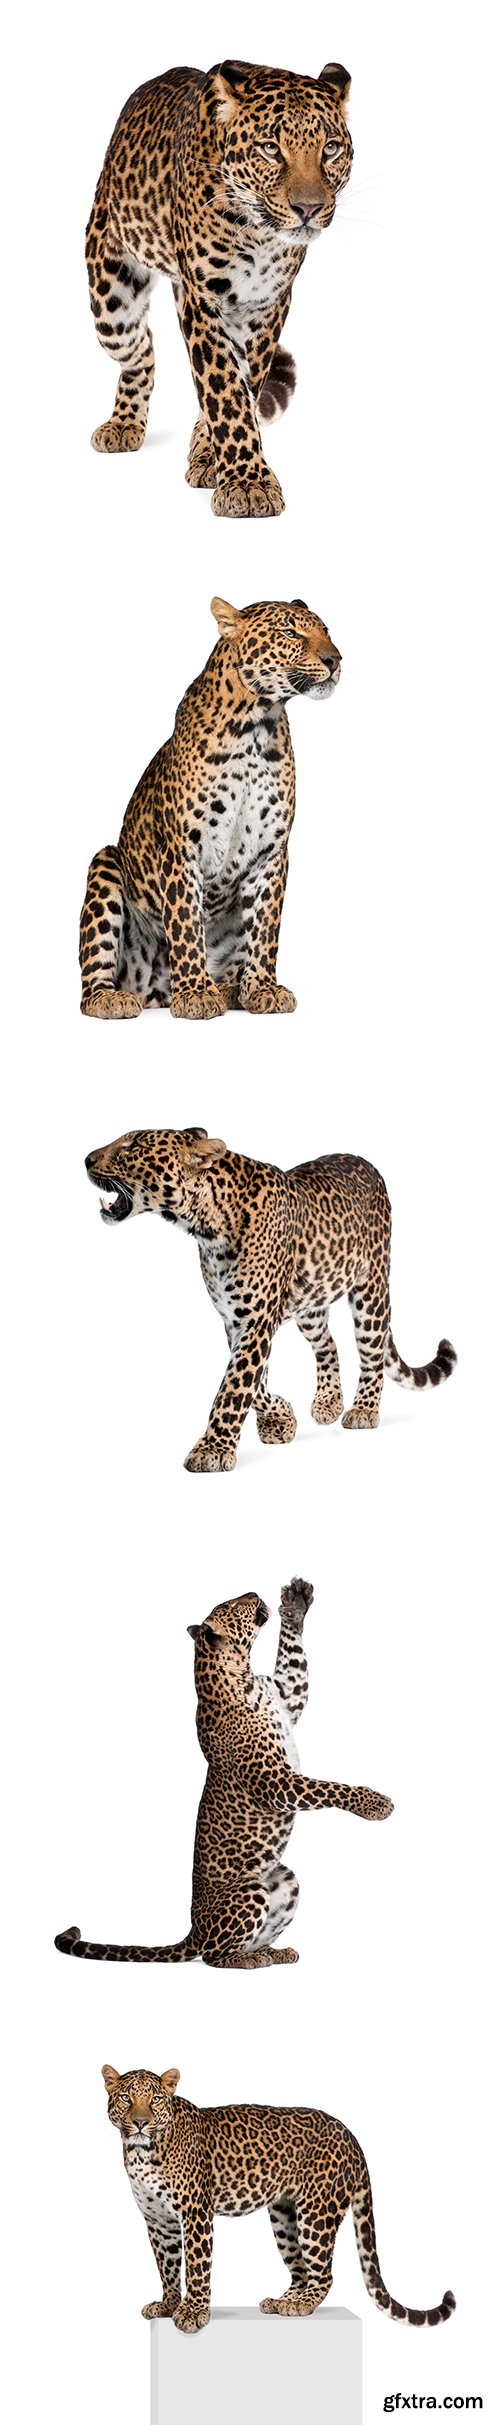 Leopard Isolated - 10xJPGs